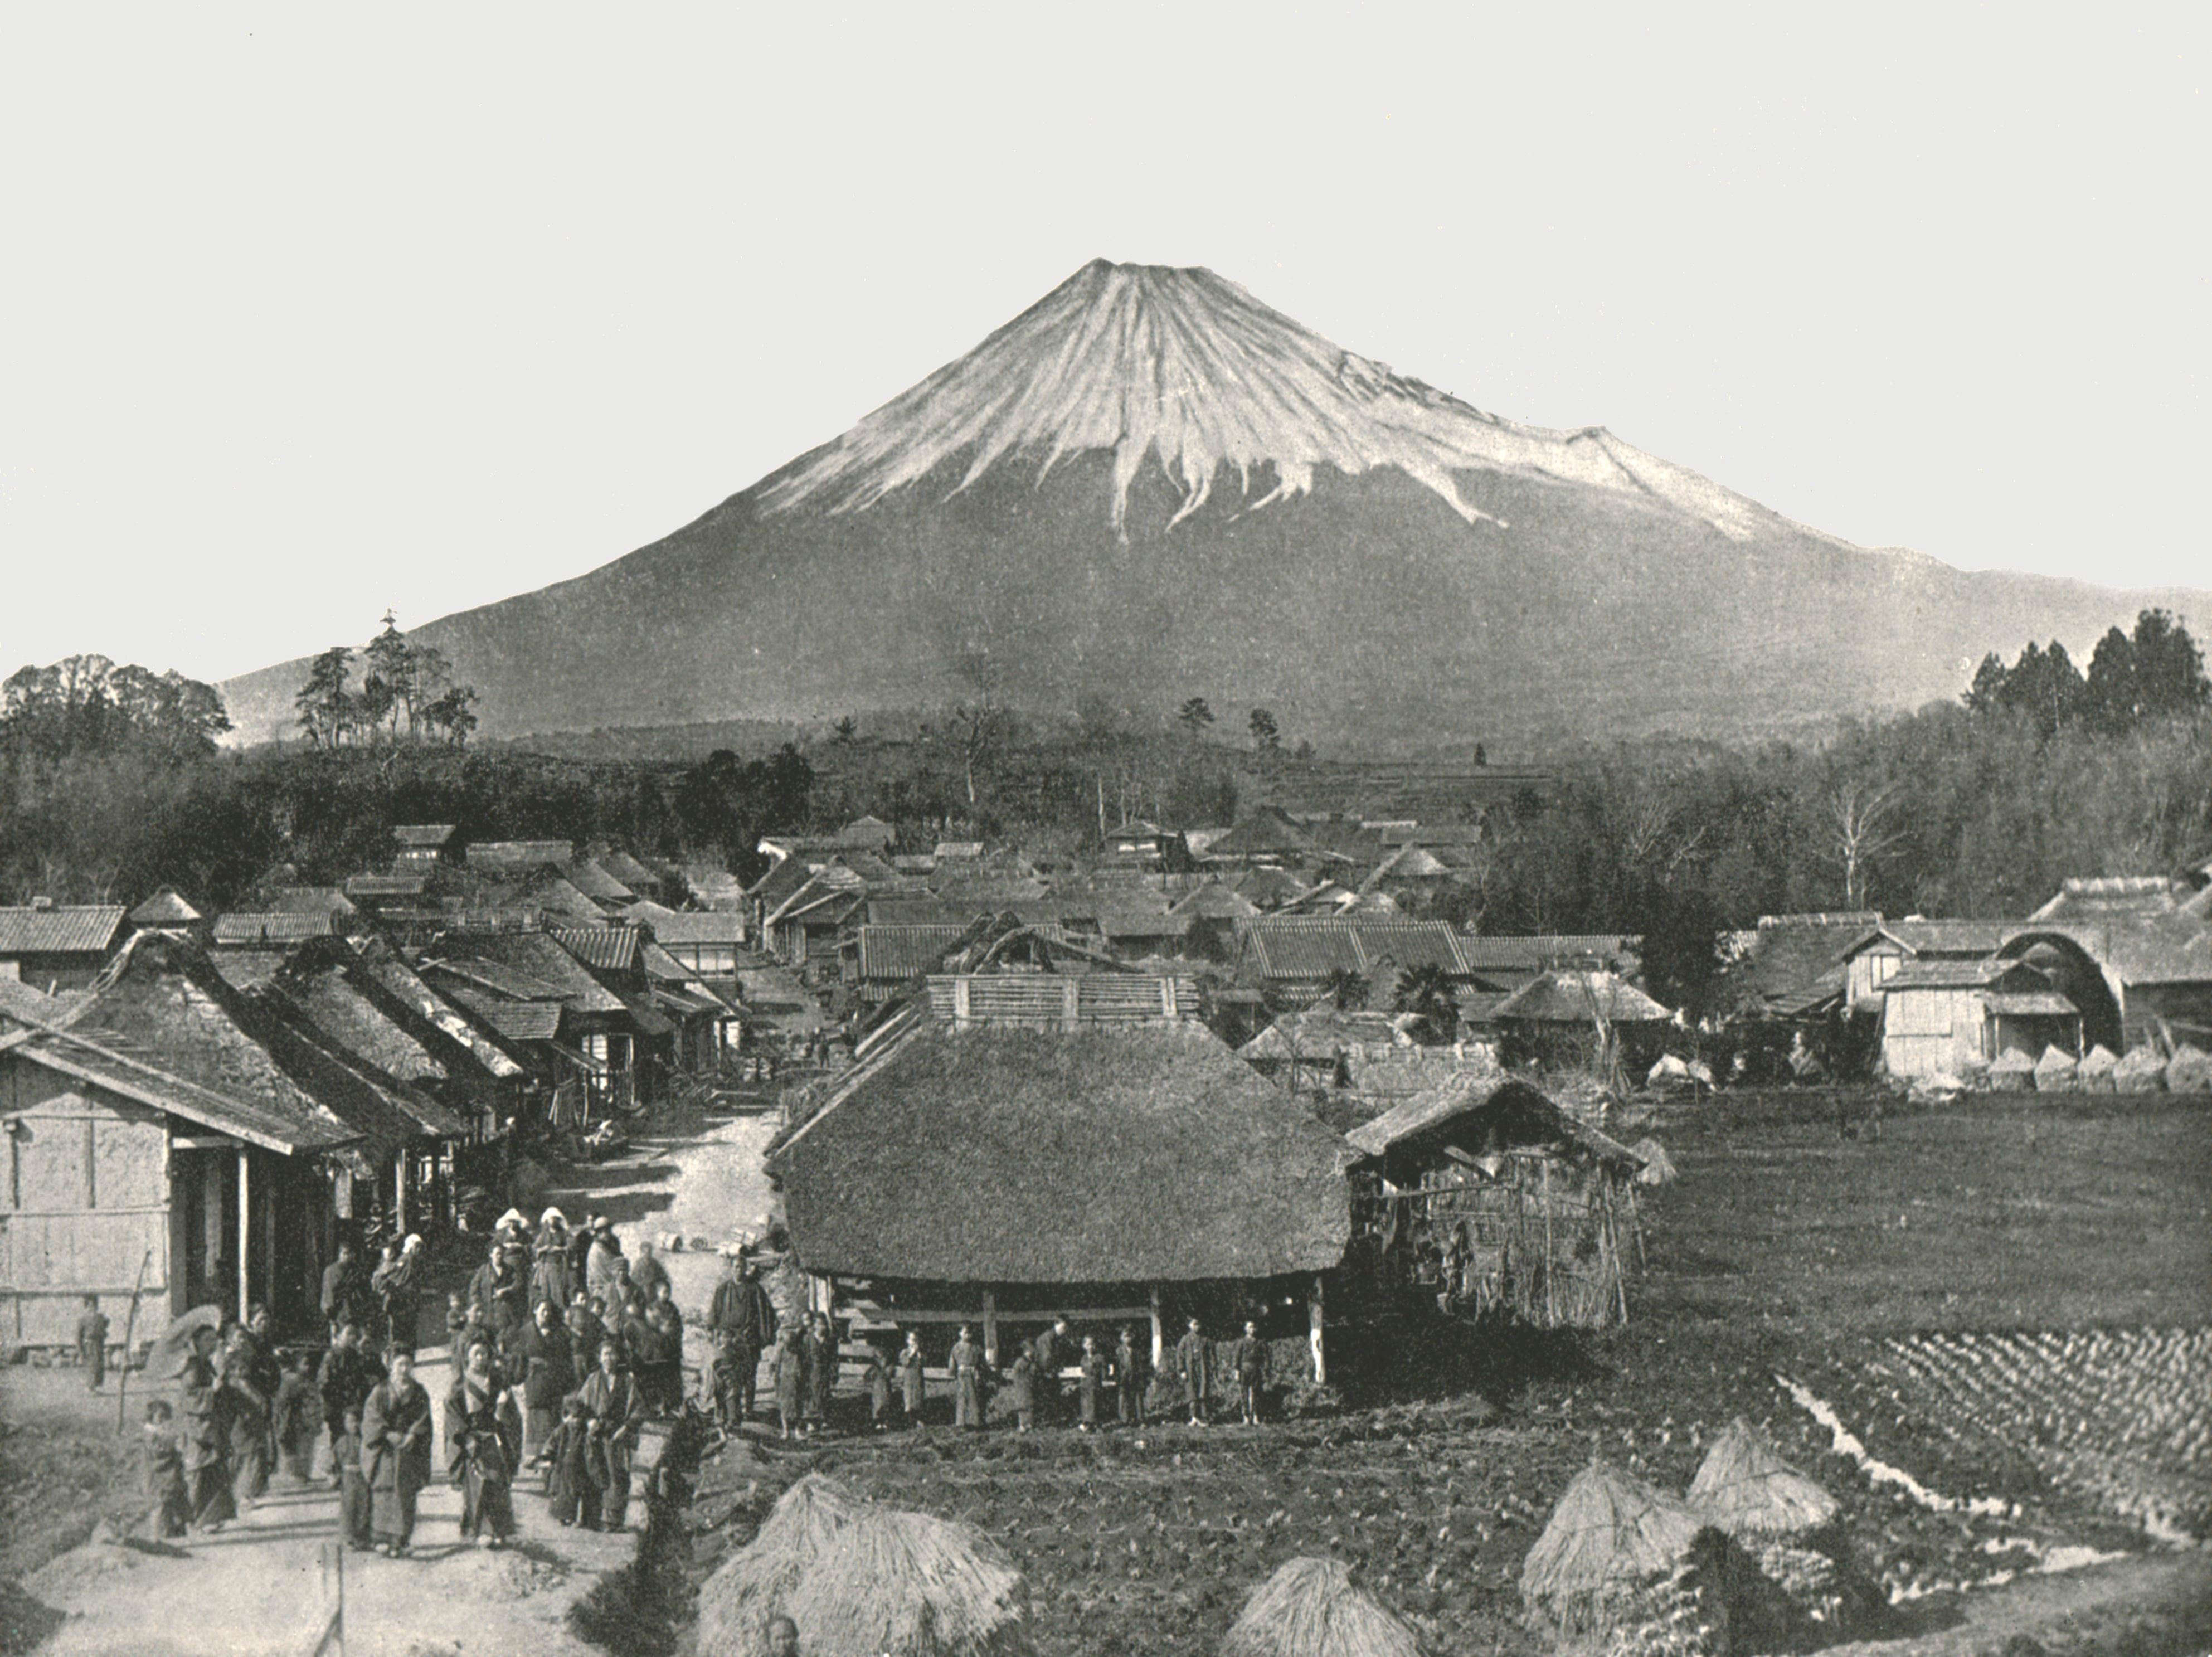 """Slide 4 of 55: Fujiyama, The Sacred Mountain, from Jedzumi Village', Japan, 1895. View of Mount Fuji, which at 3,776.24 metres (12,389 feet) is the highest volcano in Japan. From """"Round the World in Pictures and Photographs: From London Bridge to Charing Cross via Yokohama and Chicago"""". [George Newnes Ltd, London, 1895]. Artist Unknown. (Photo by The Print Collector/Getty Images)"""